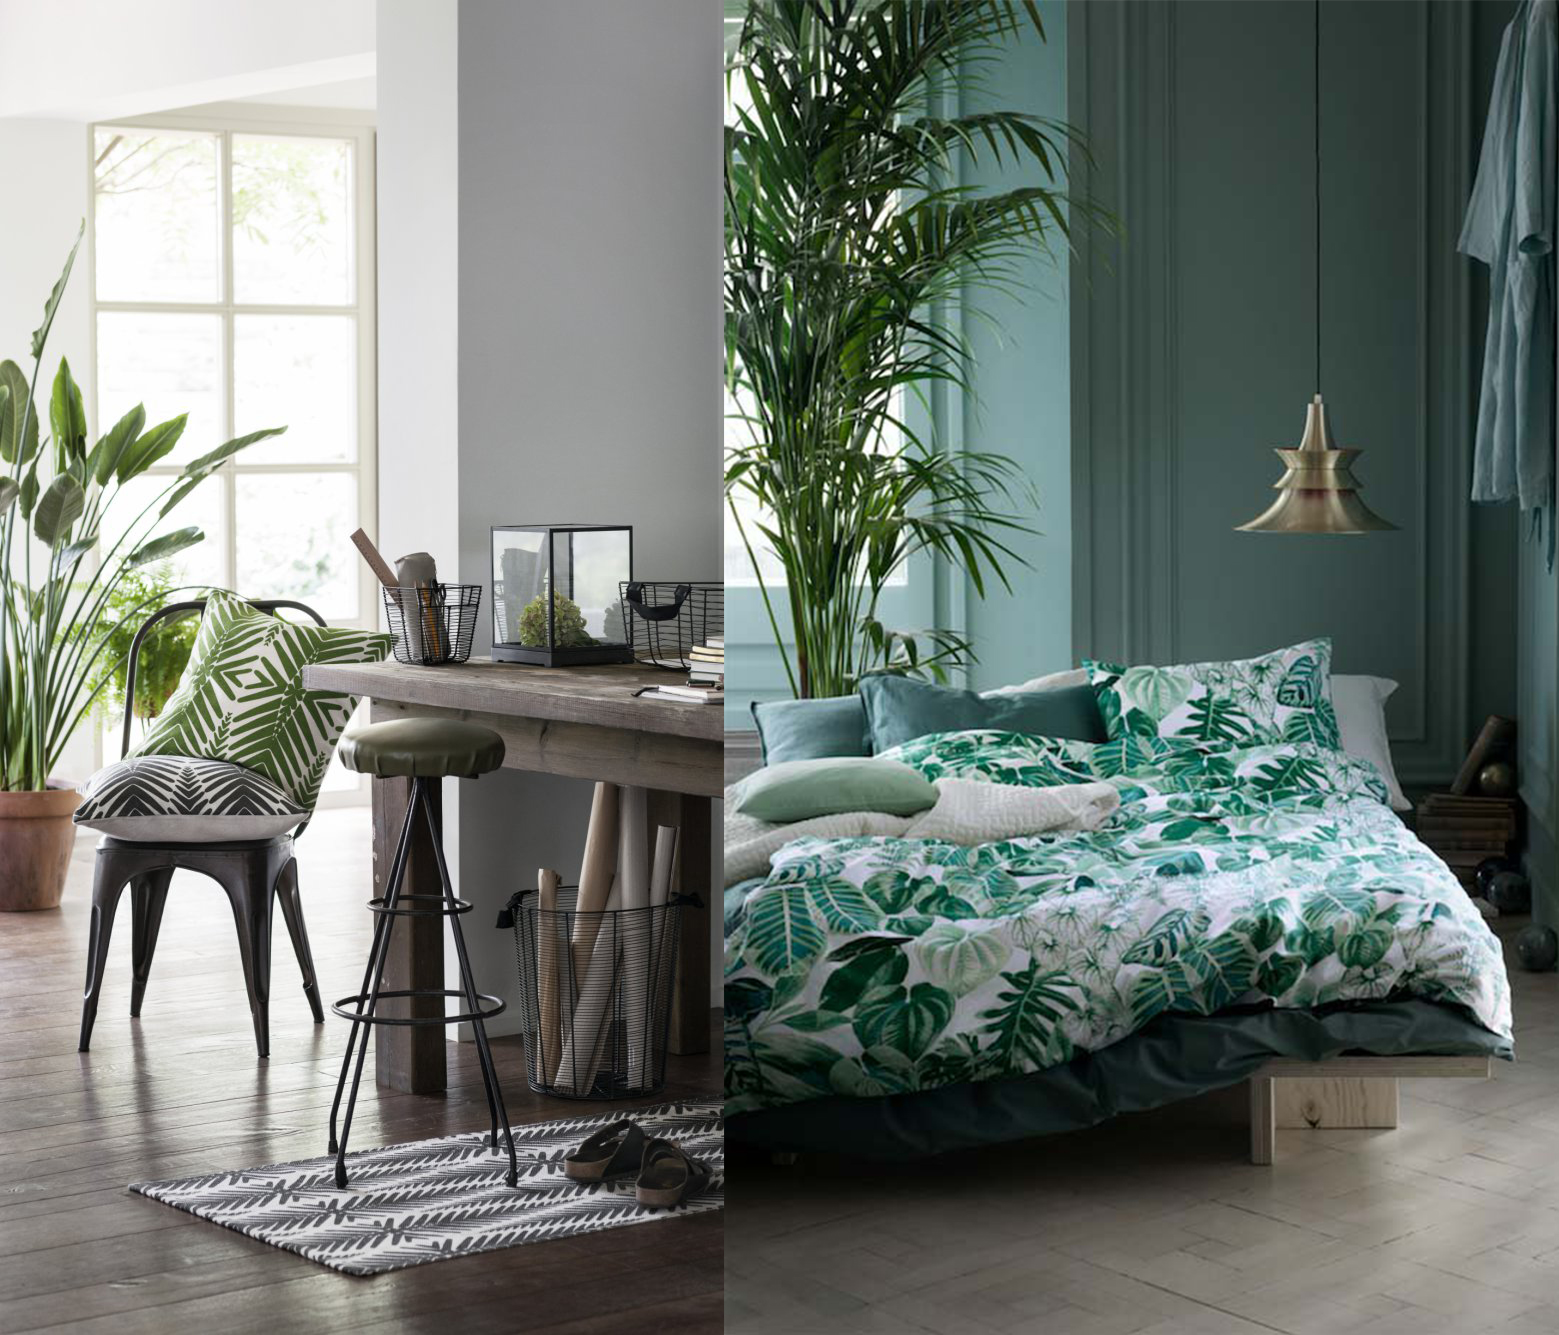 H&M Tropical Homeware